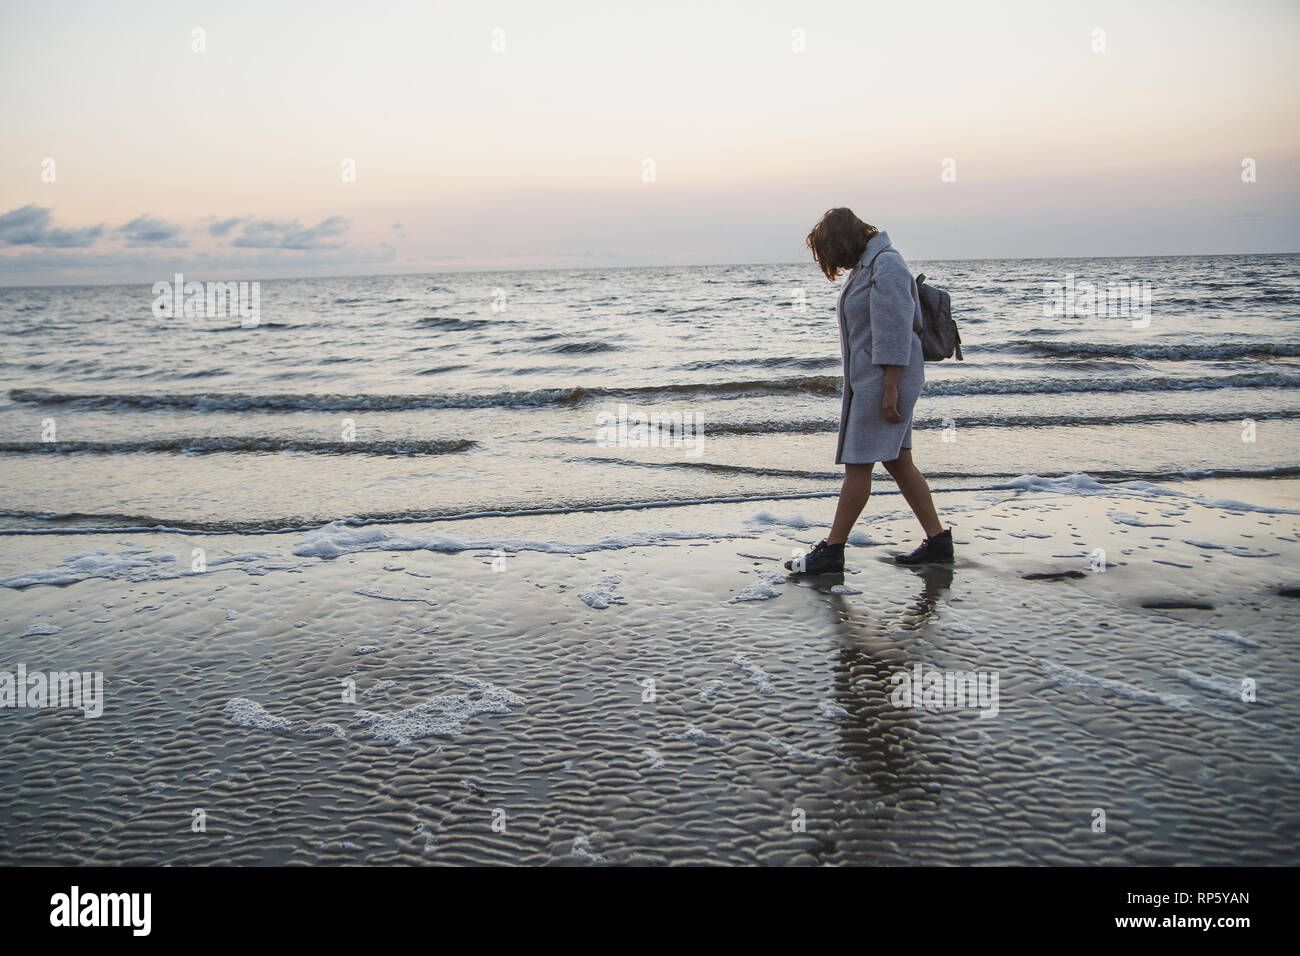 Alone girl in coat and leather boots walking along seashore.